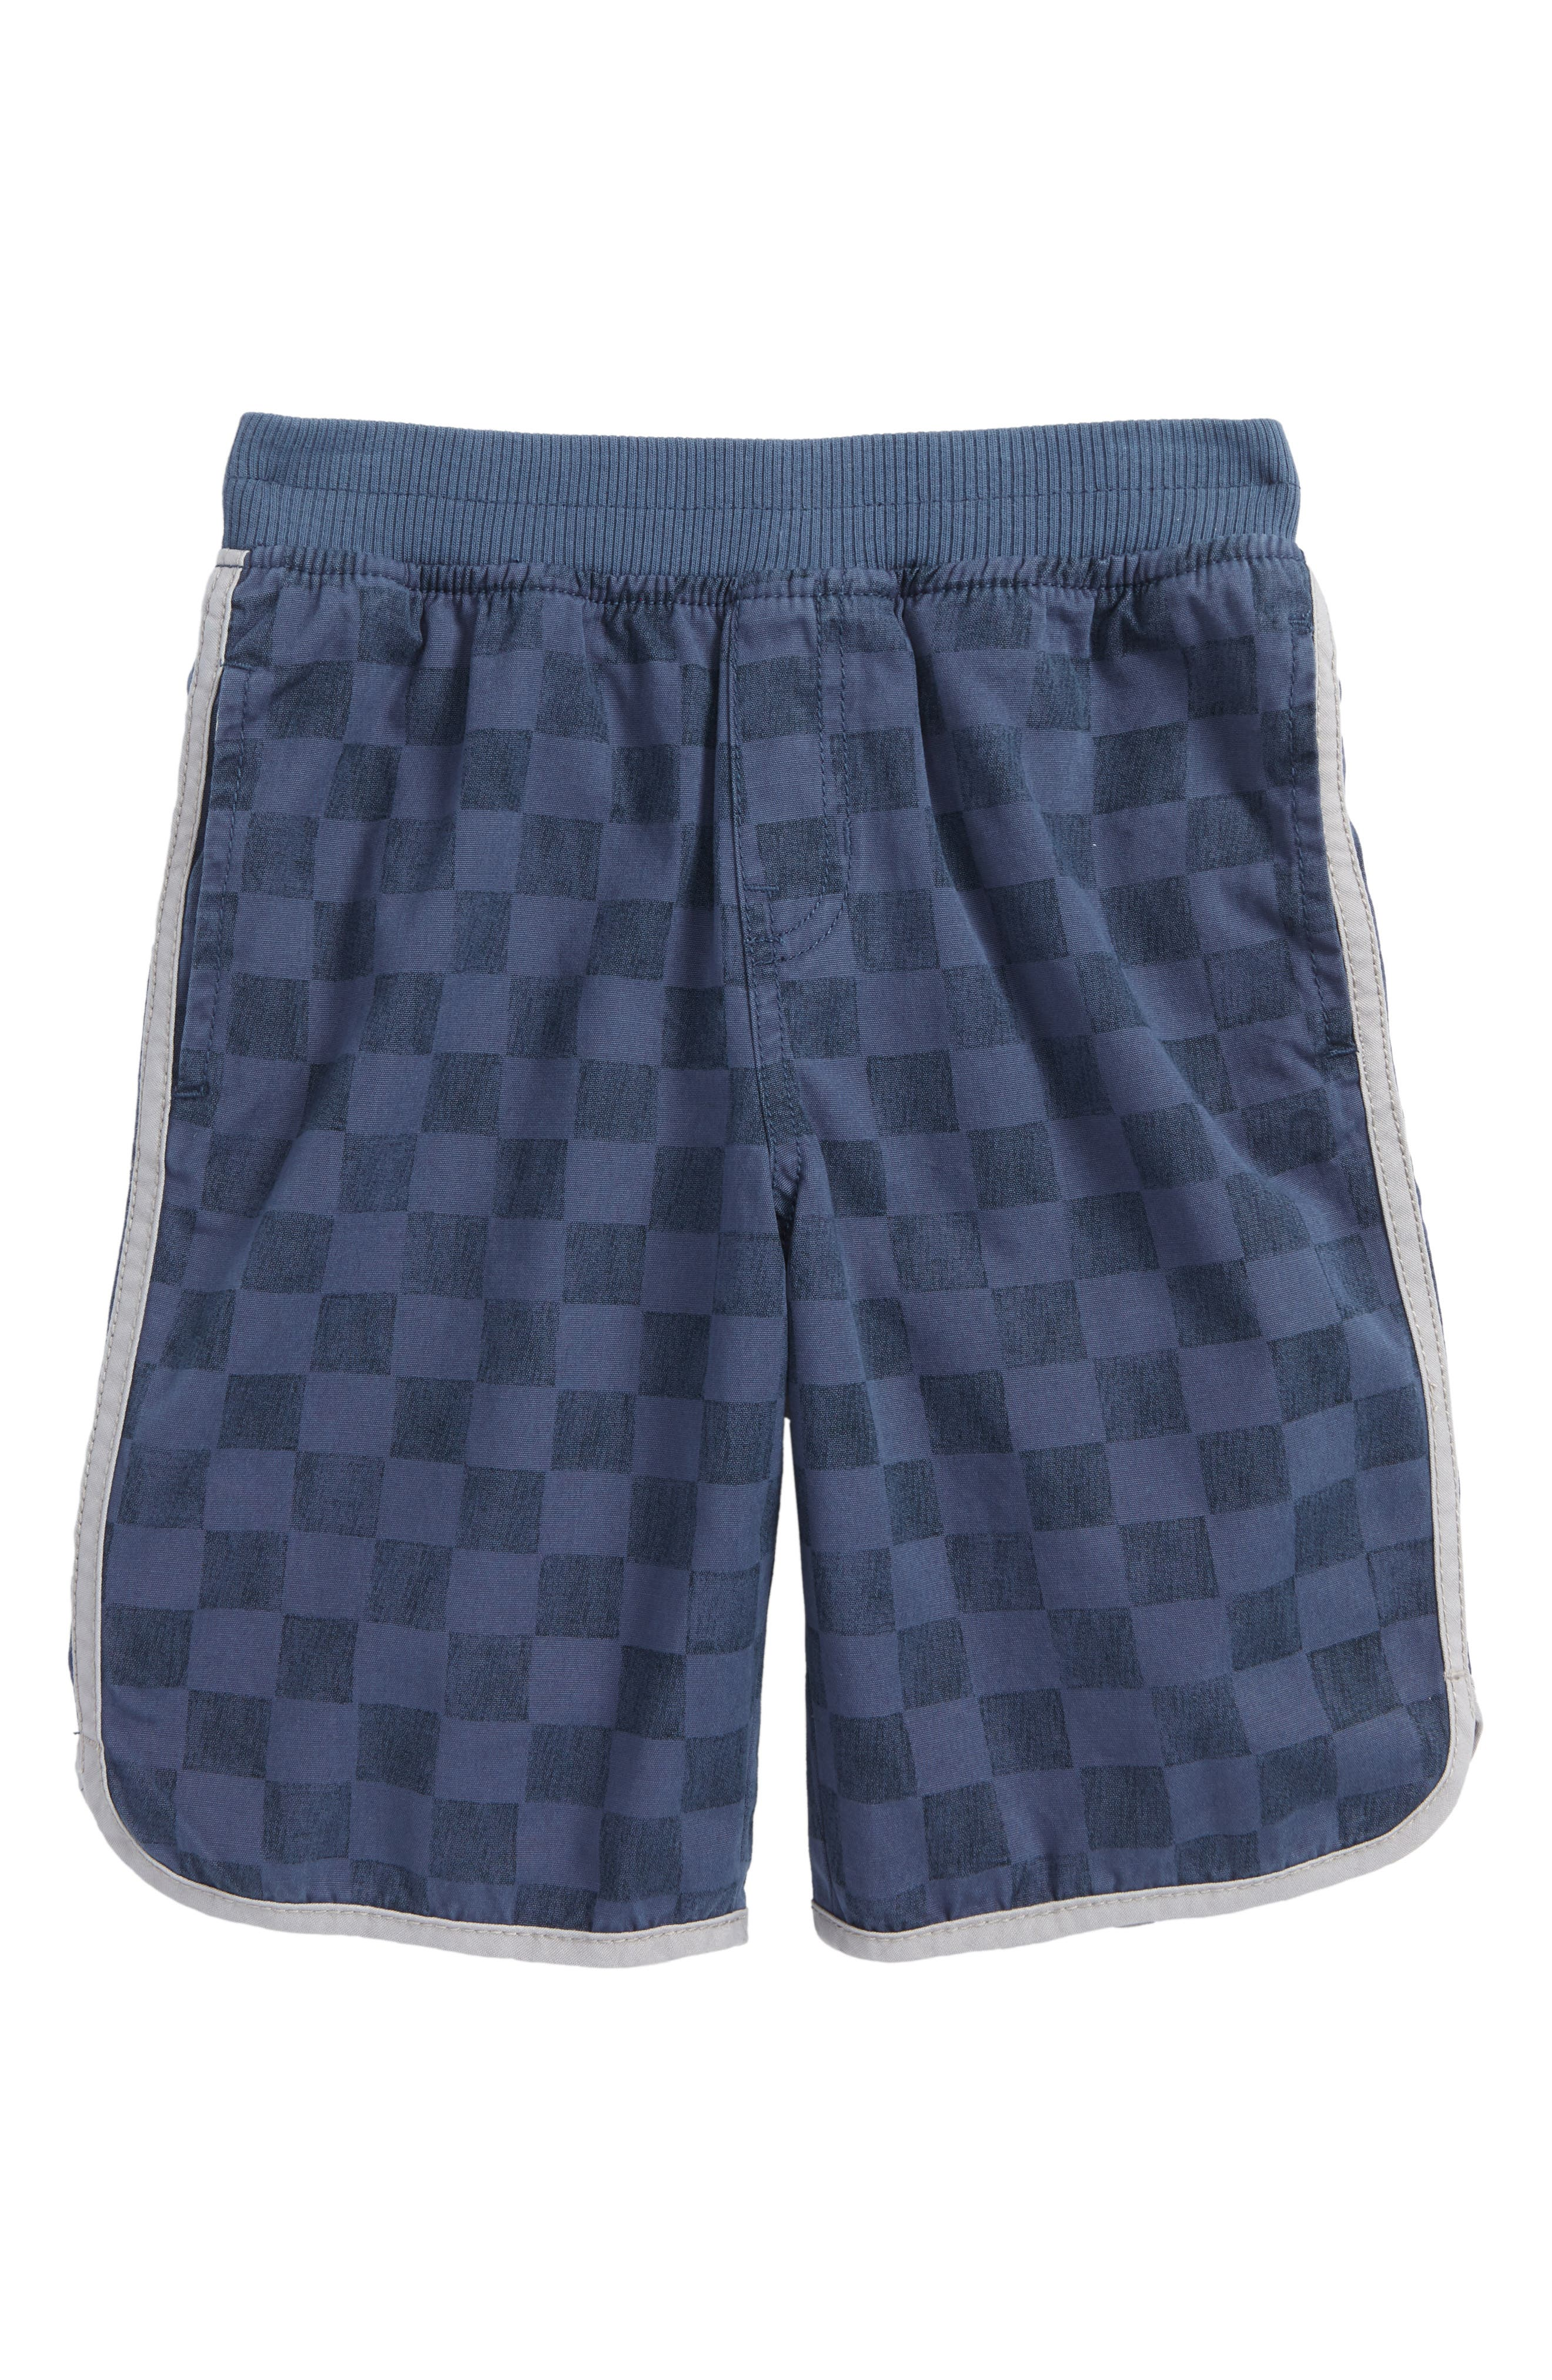 Piped Shorts,                         Main,                         color, Loch Blue Checkerboard